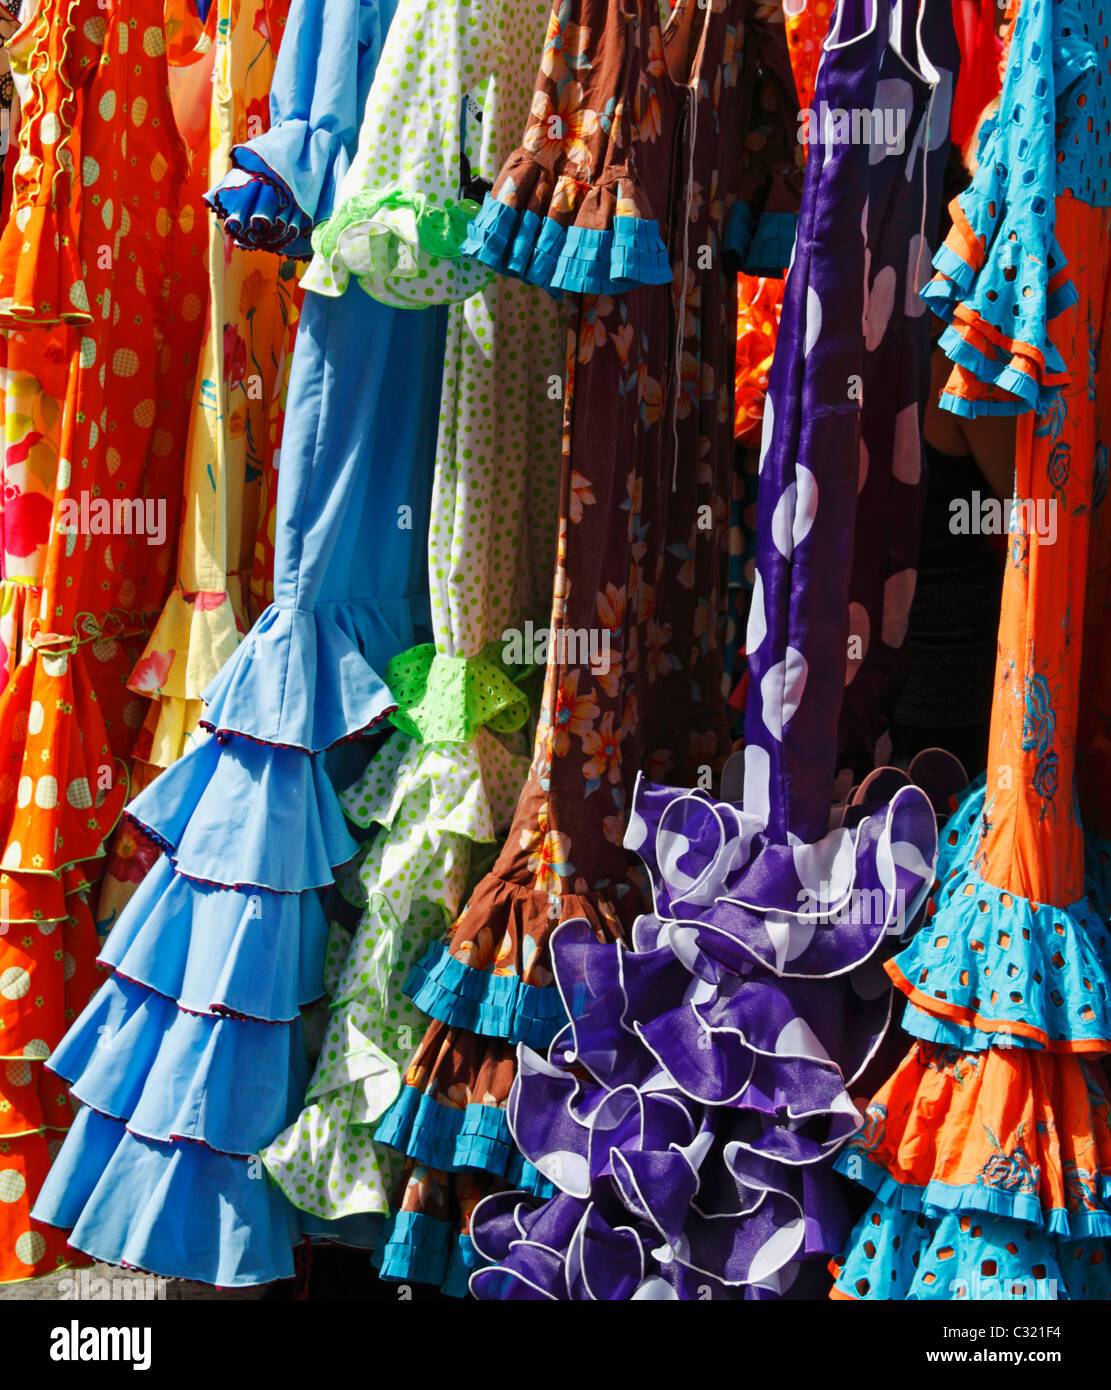 Flamenco dresses on market stall on famous street market in calle Feria, Barrio Macarena, Seville, Spain, Europe - Stock Image